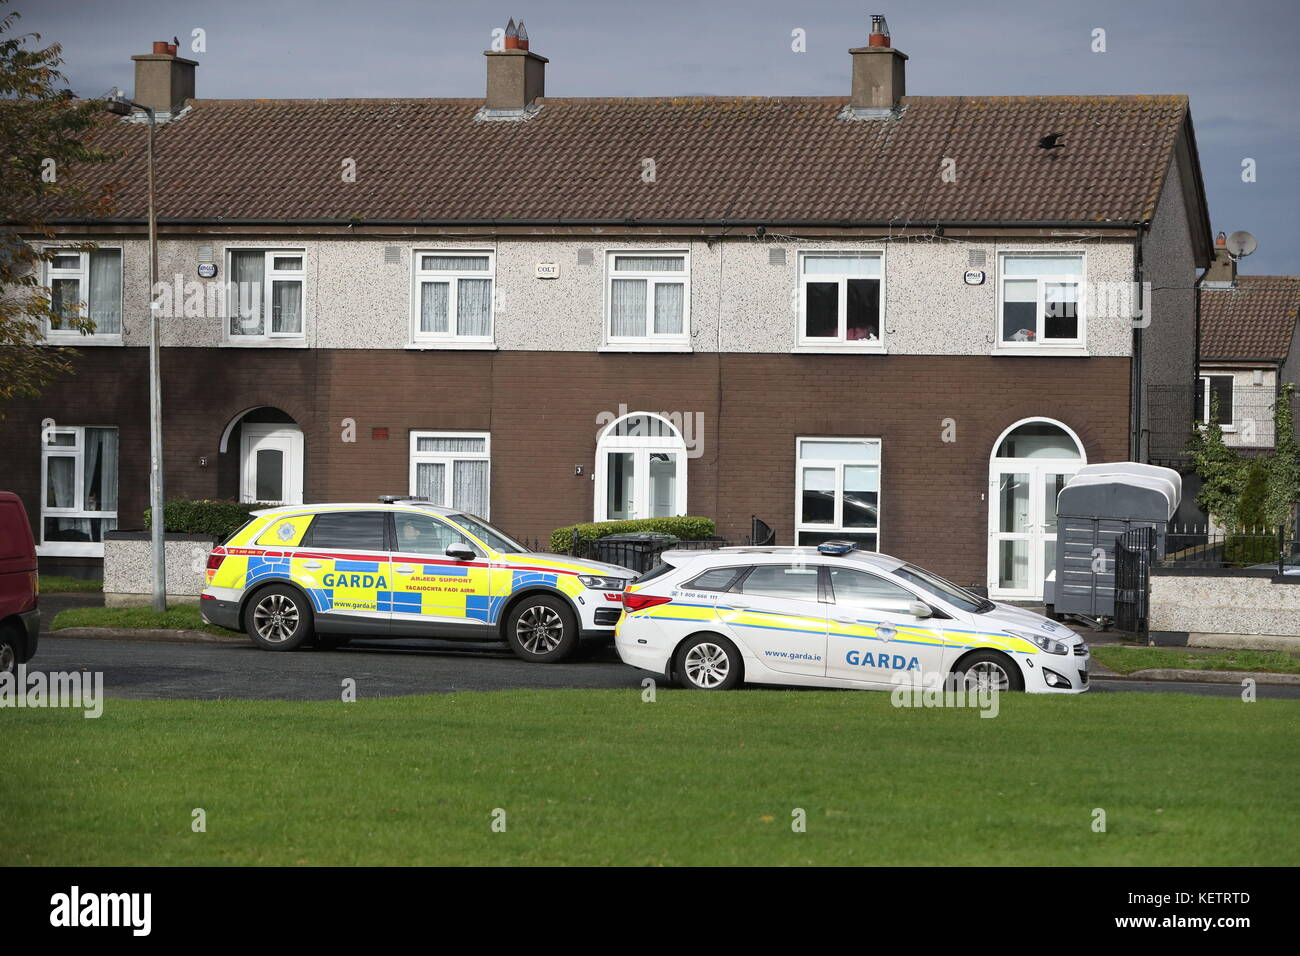 Why are so many garda showing up to make the Jobstown